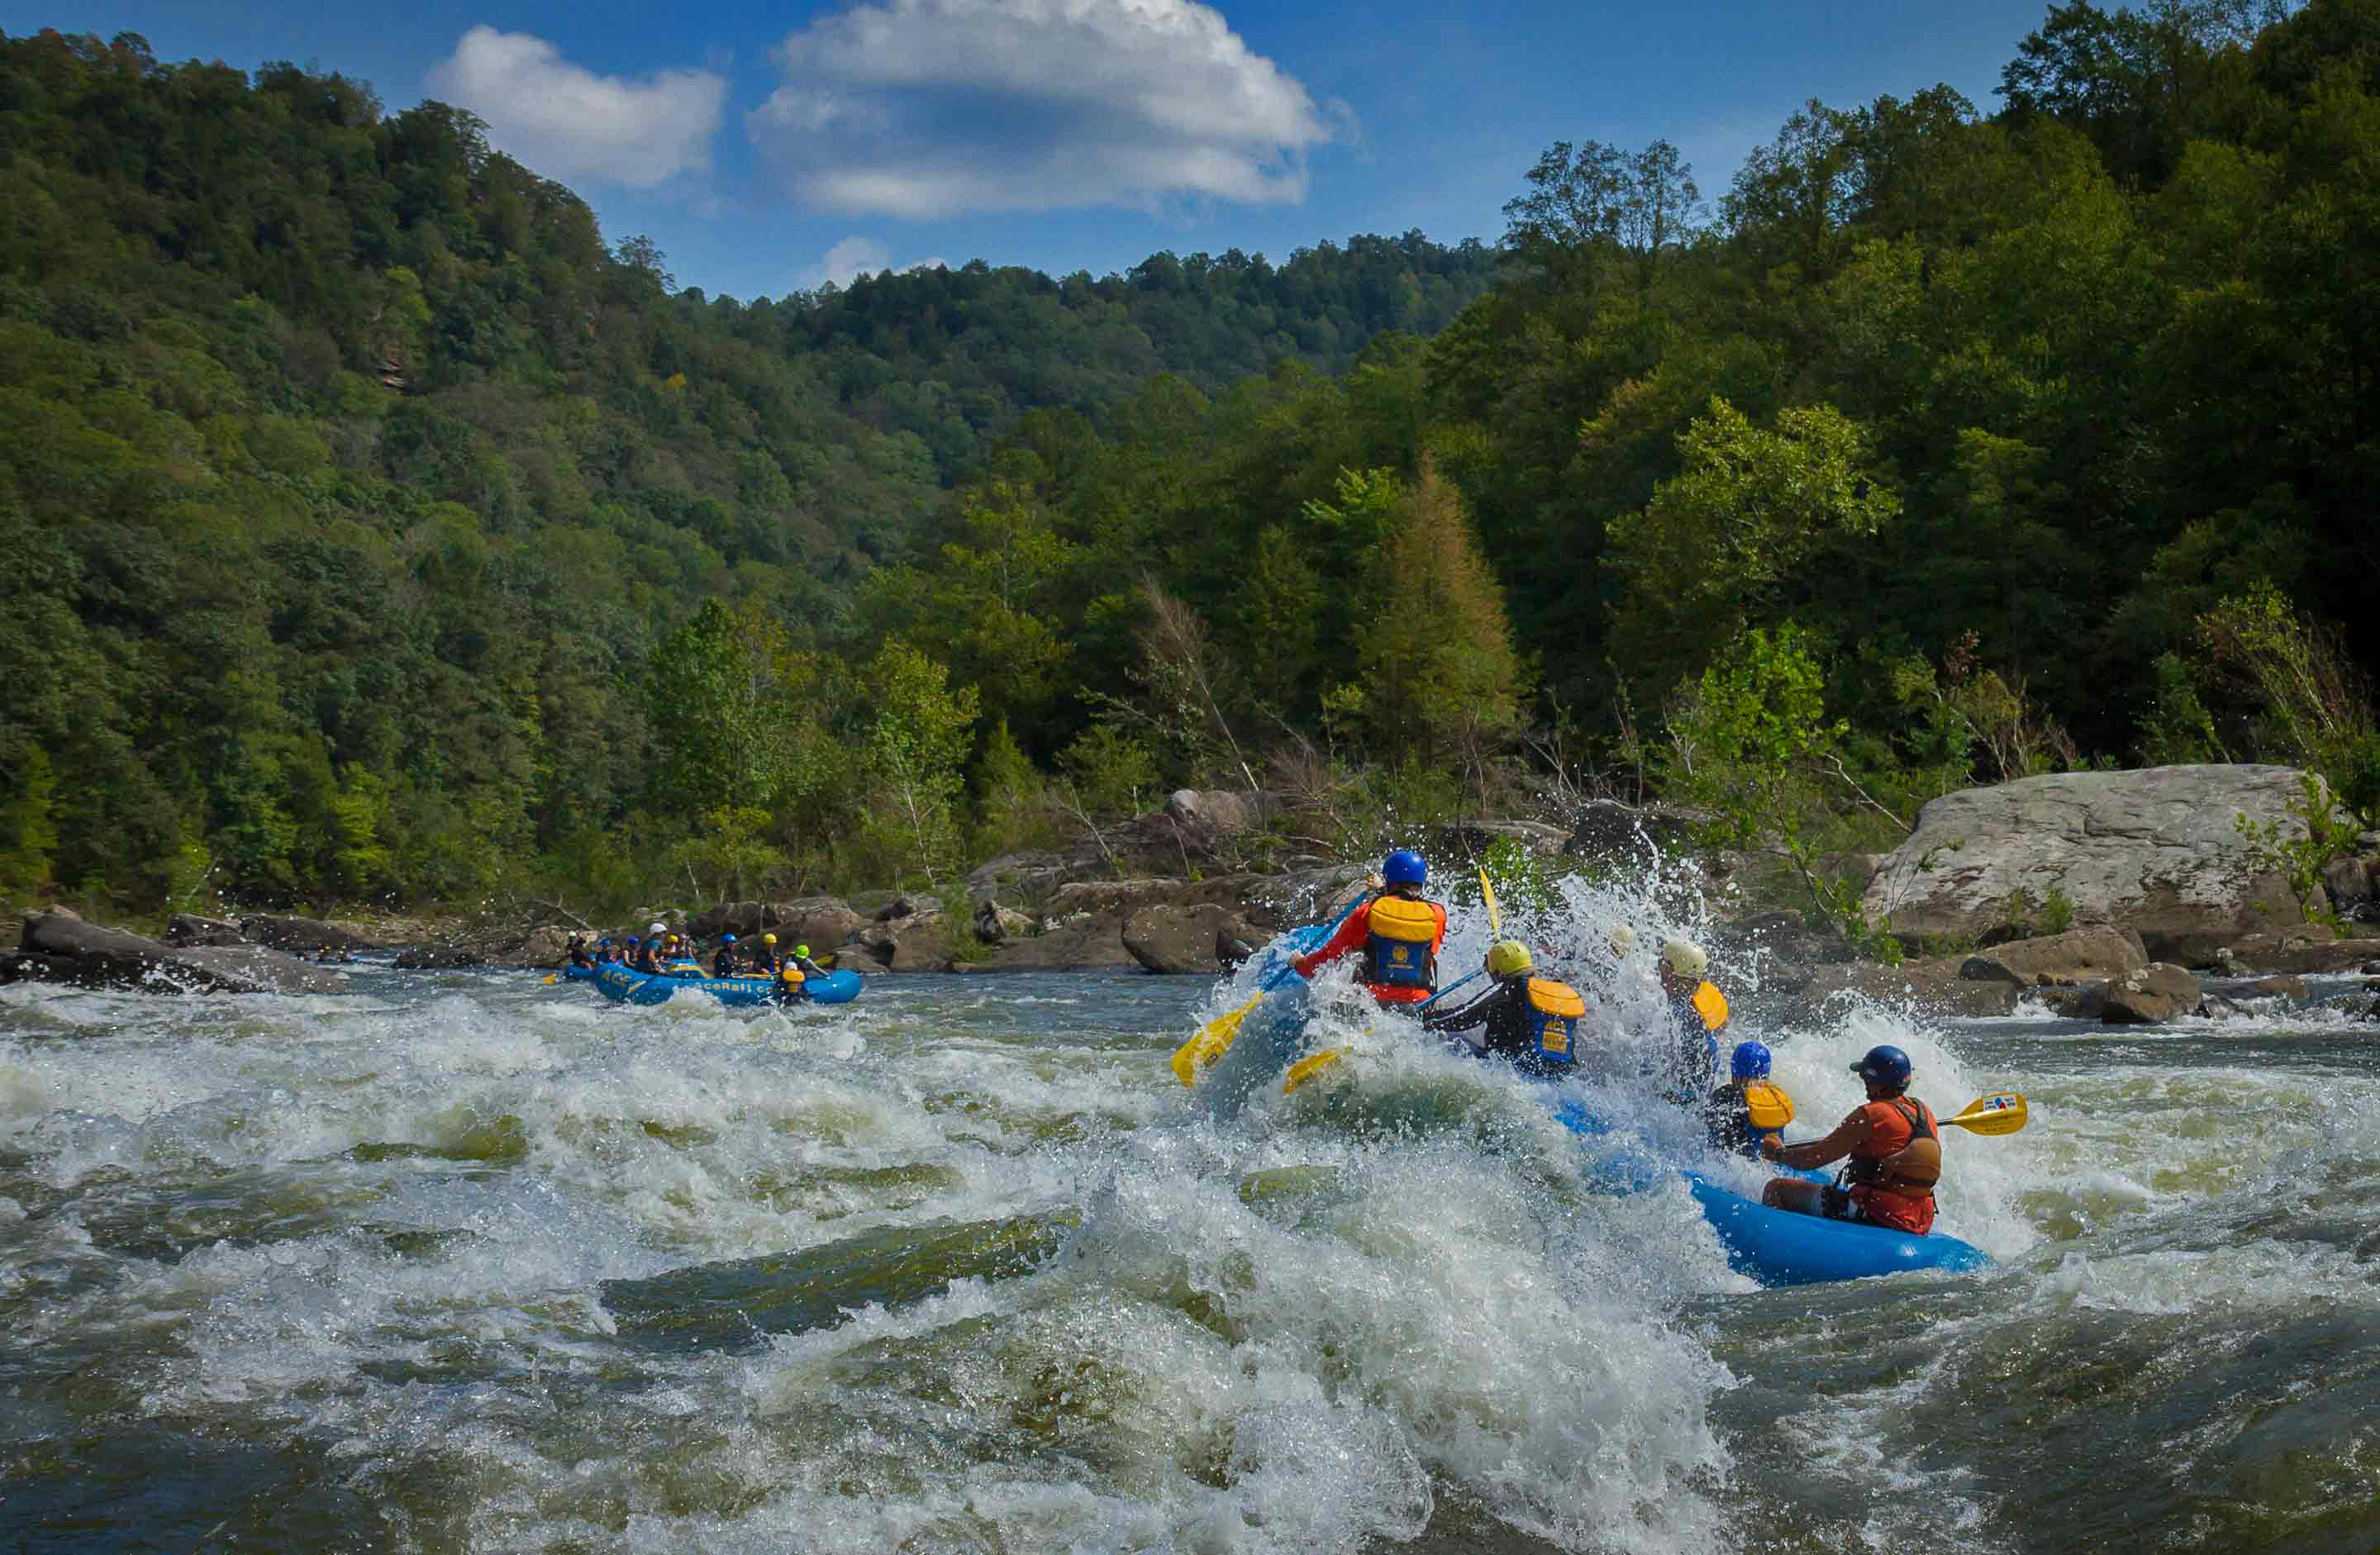 An ACE raft bursts through a wave on the Lower Gauley River whitewater rafting in West Virginia.